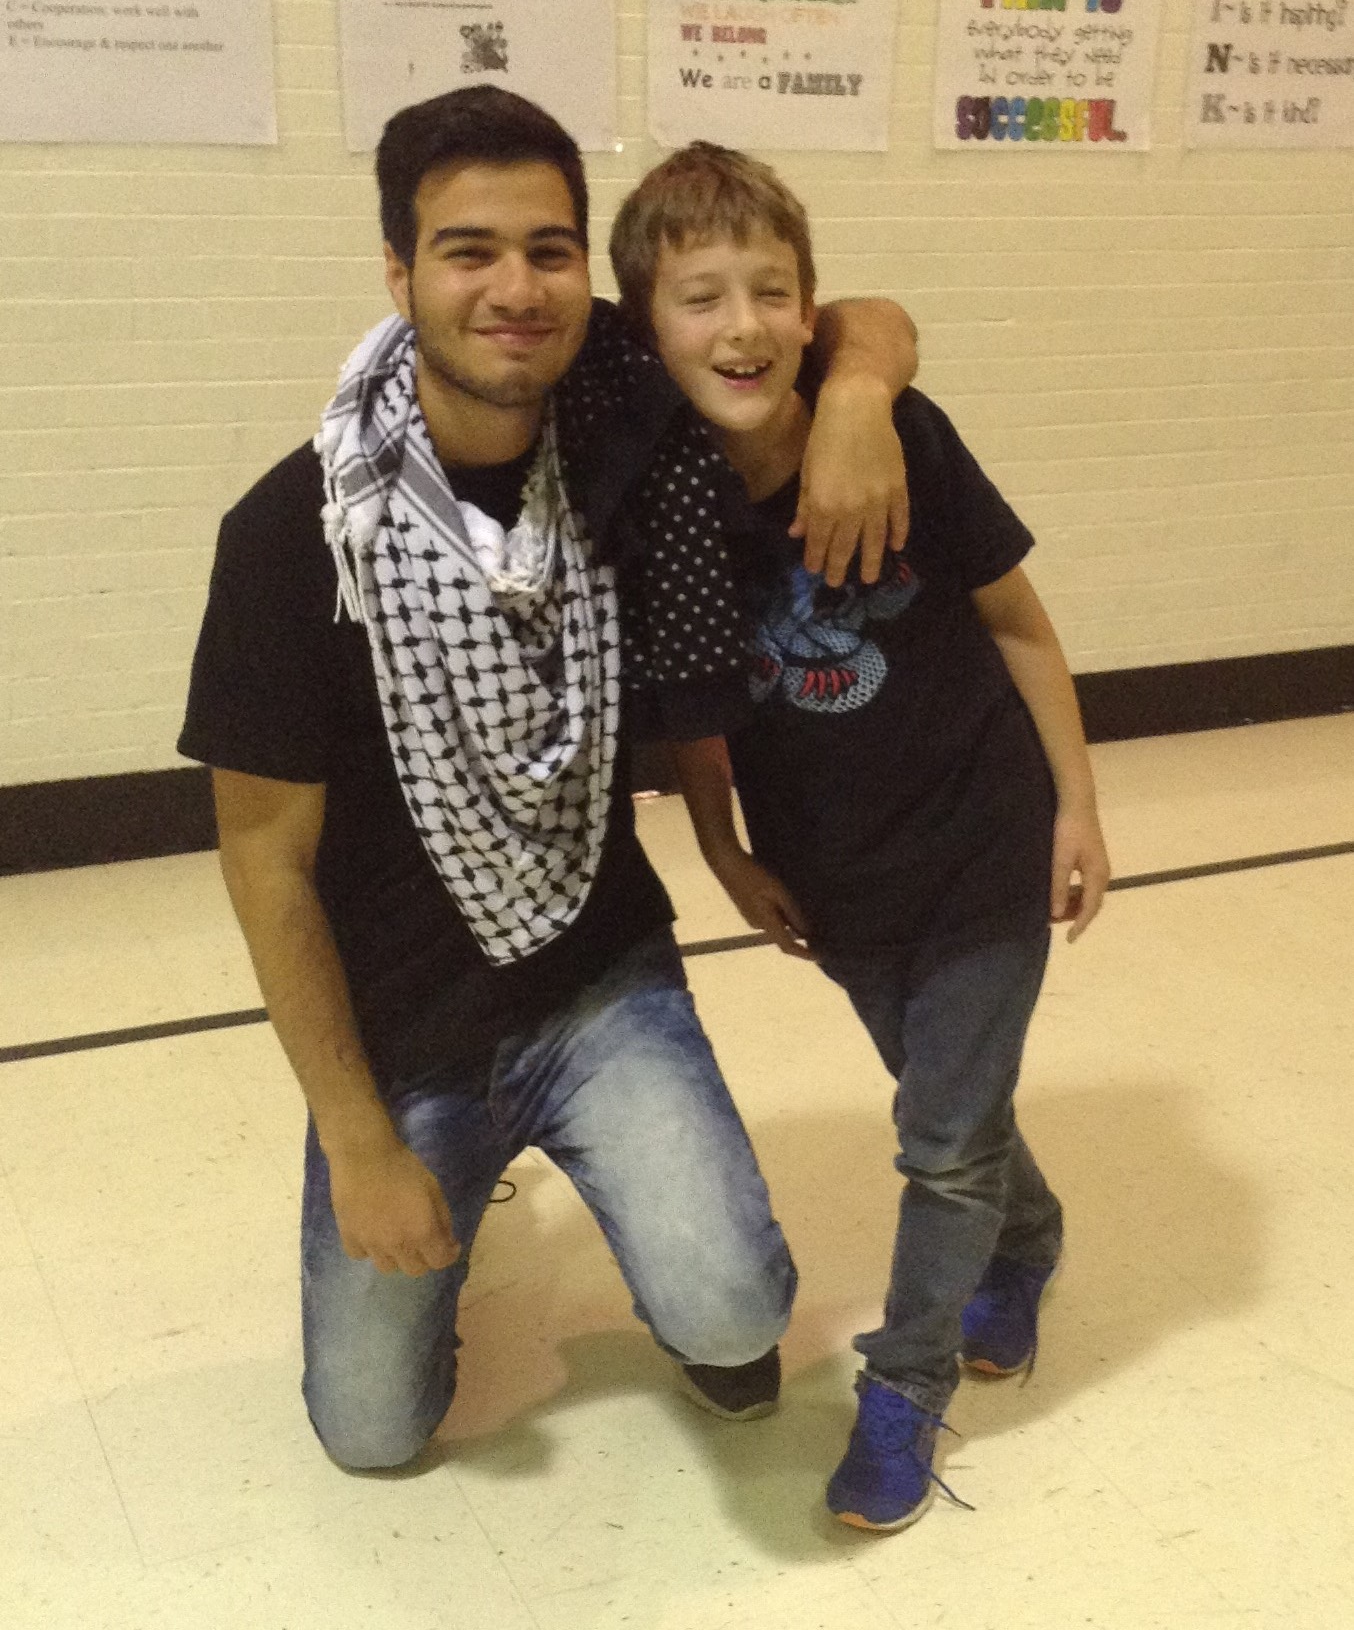 AFS Student from Palestine sees his host brother in class